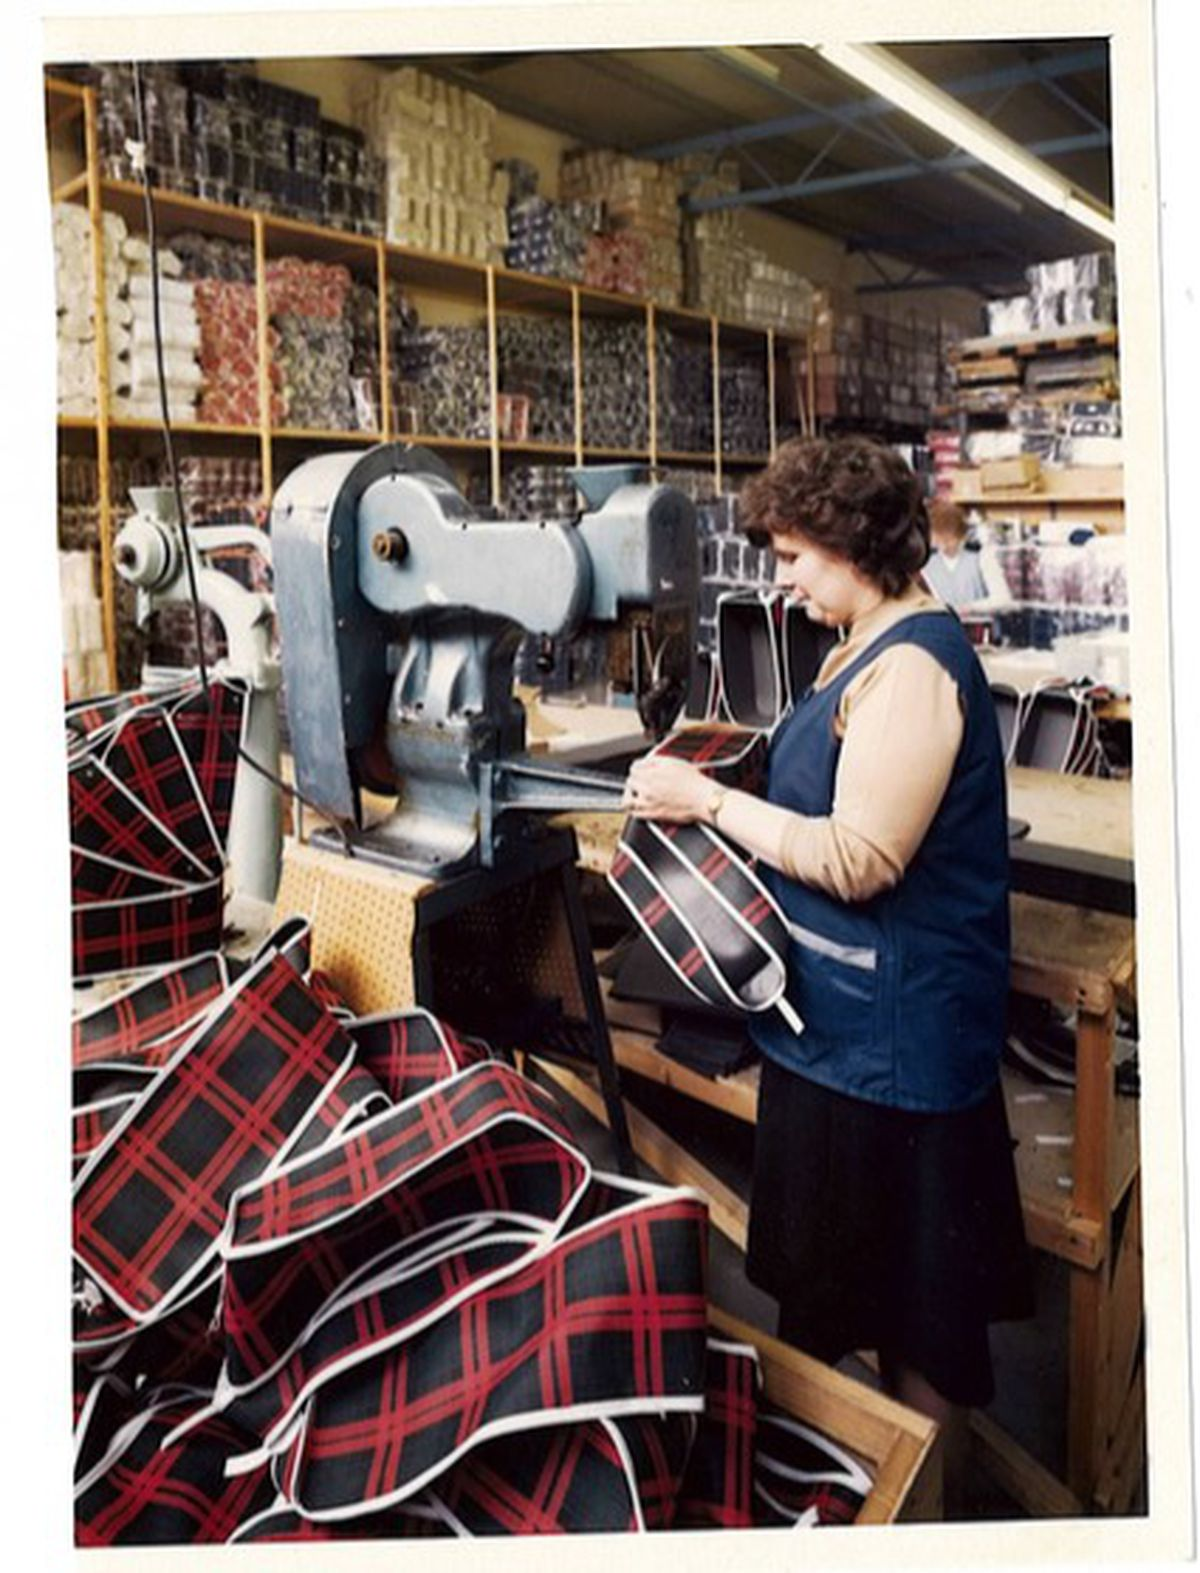 Cycle bags being produced circa 1985